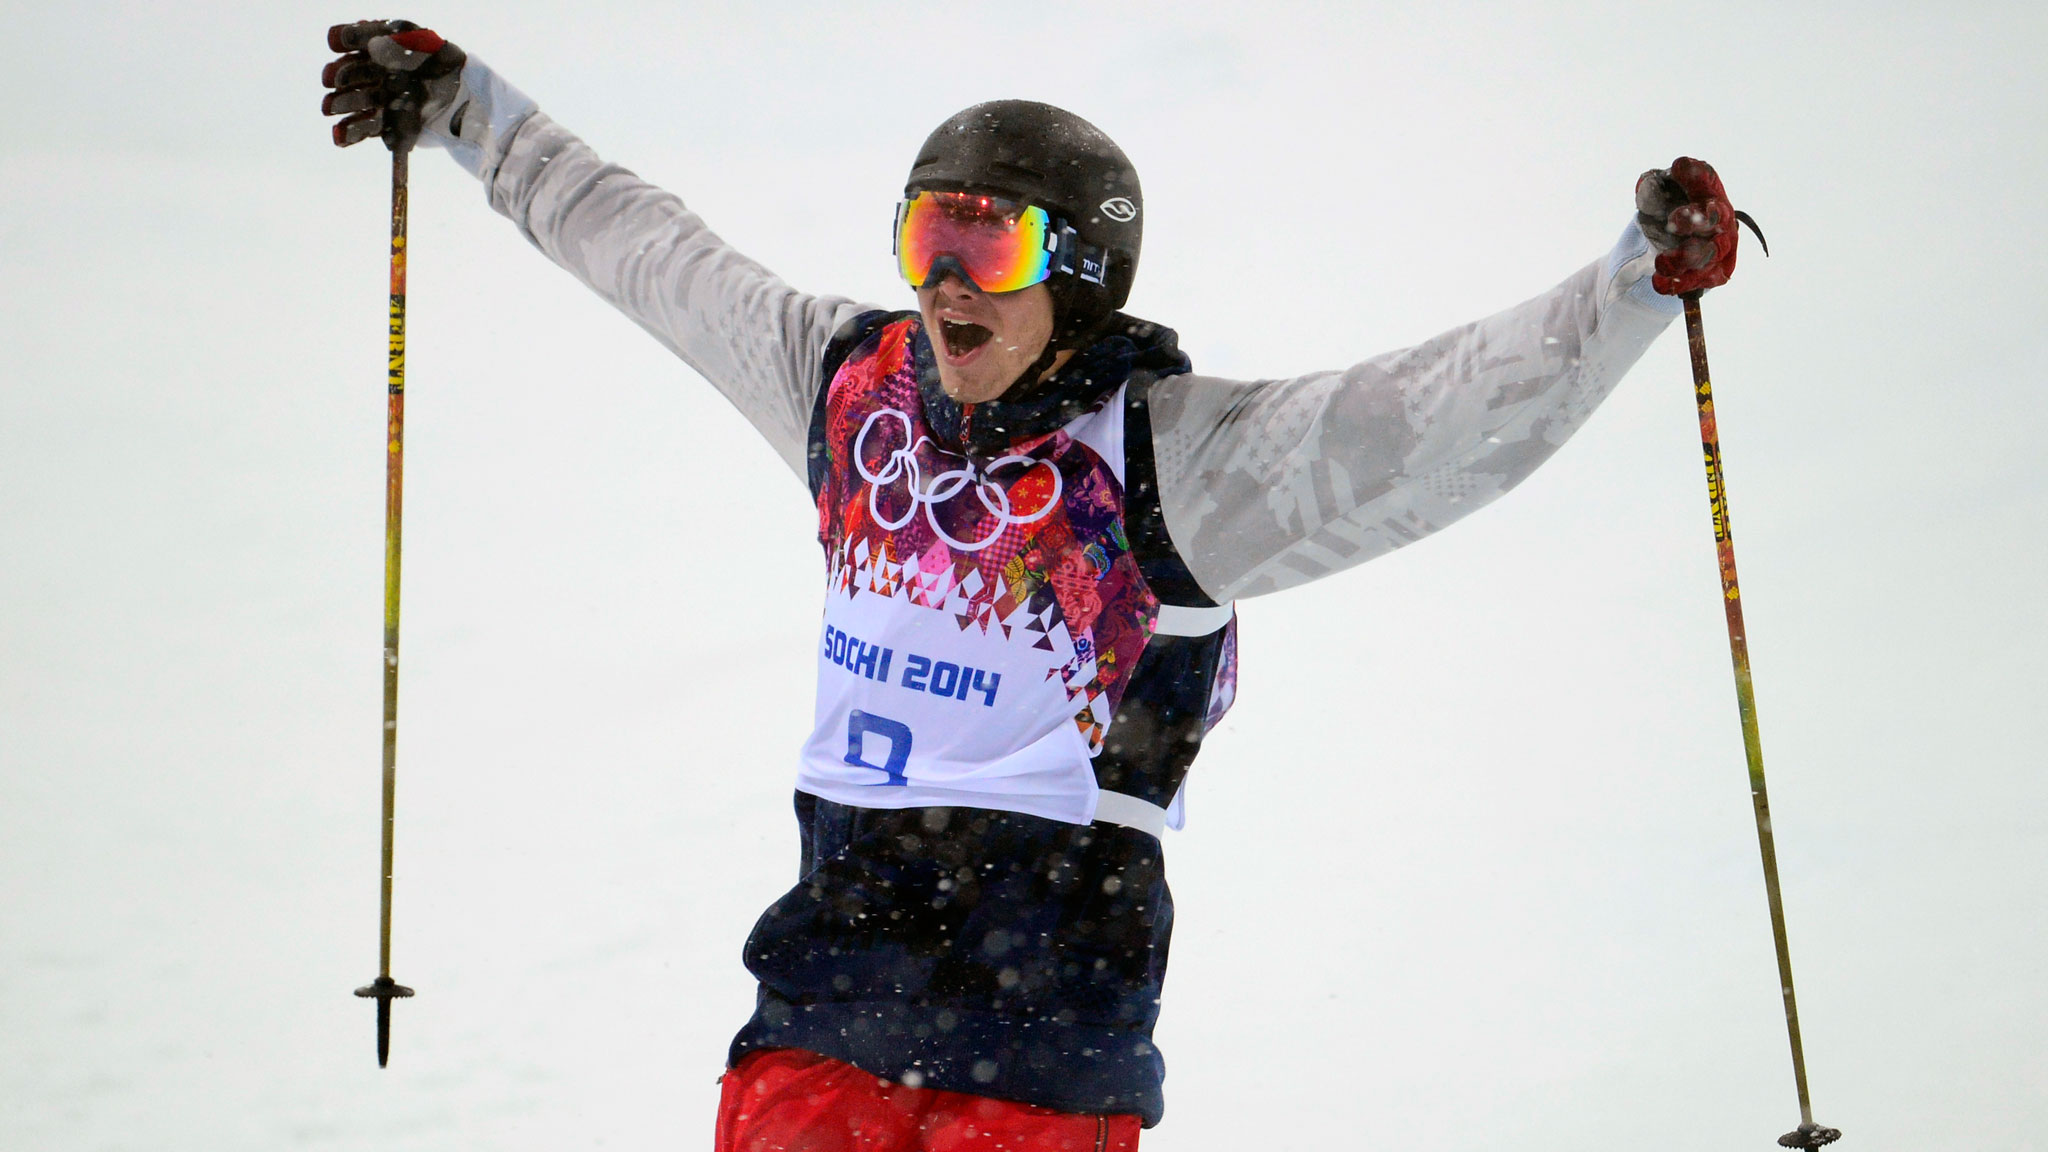 American David Wise won gold at ski halfpipe's Olympic debut.